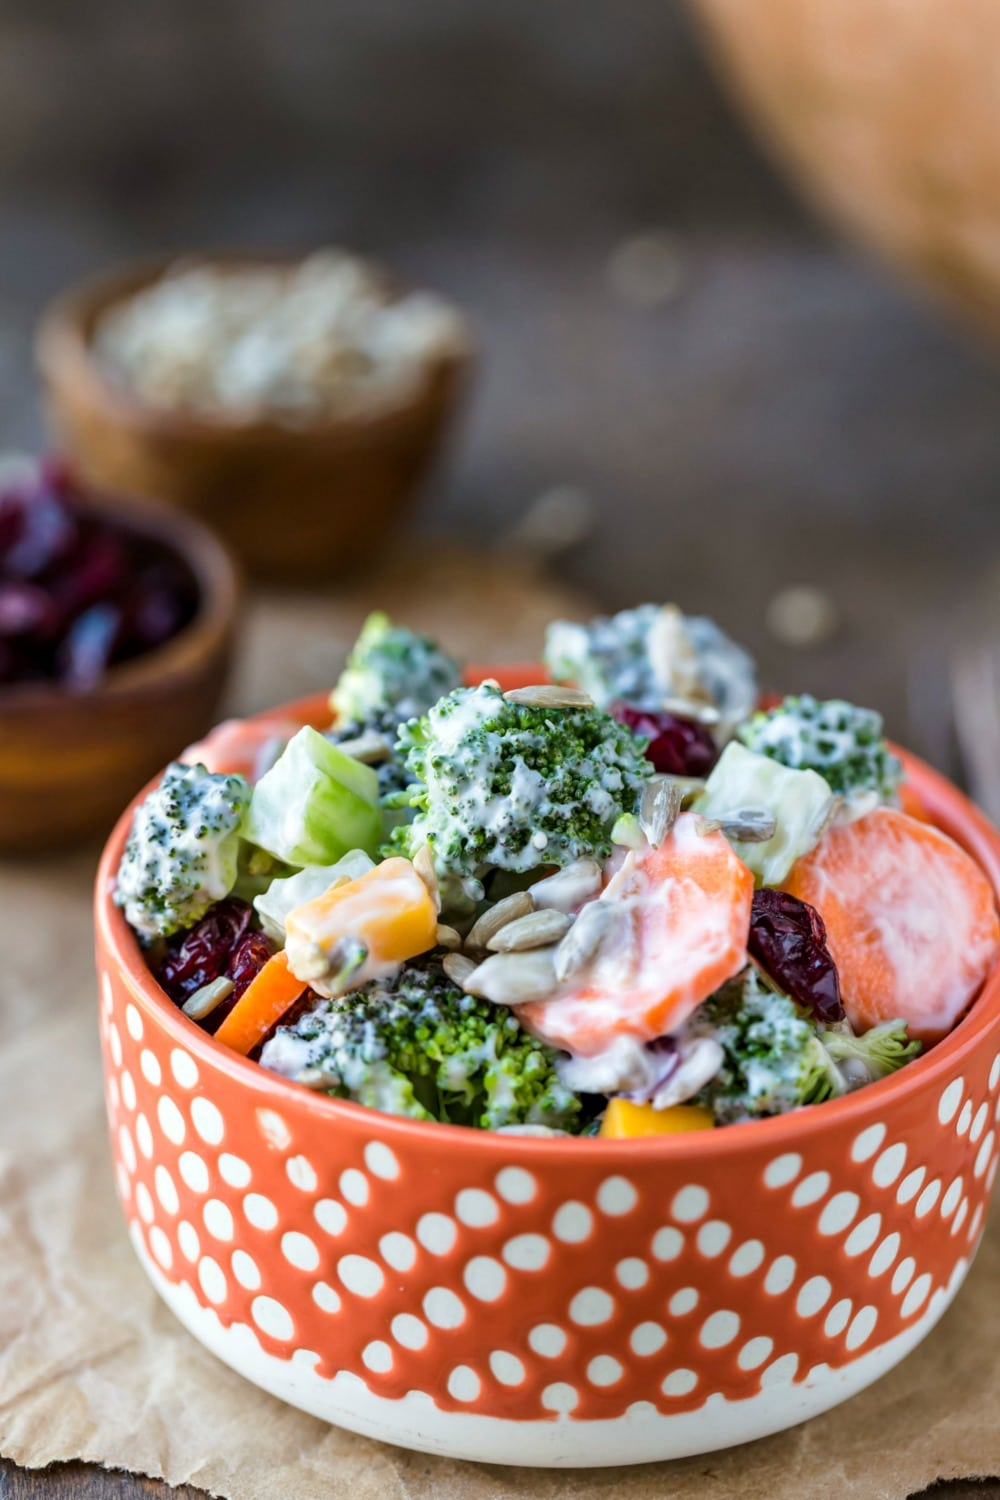 Broccoli salad in an orange and tan dish on a piece of brown paper